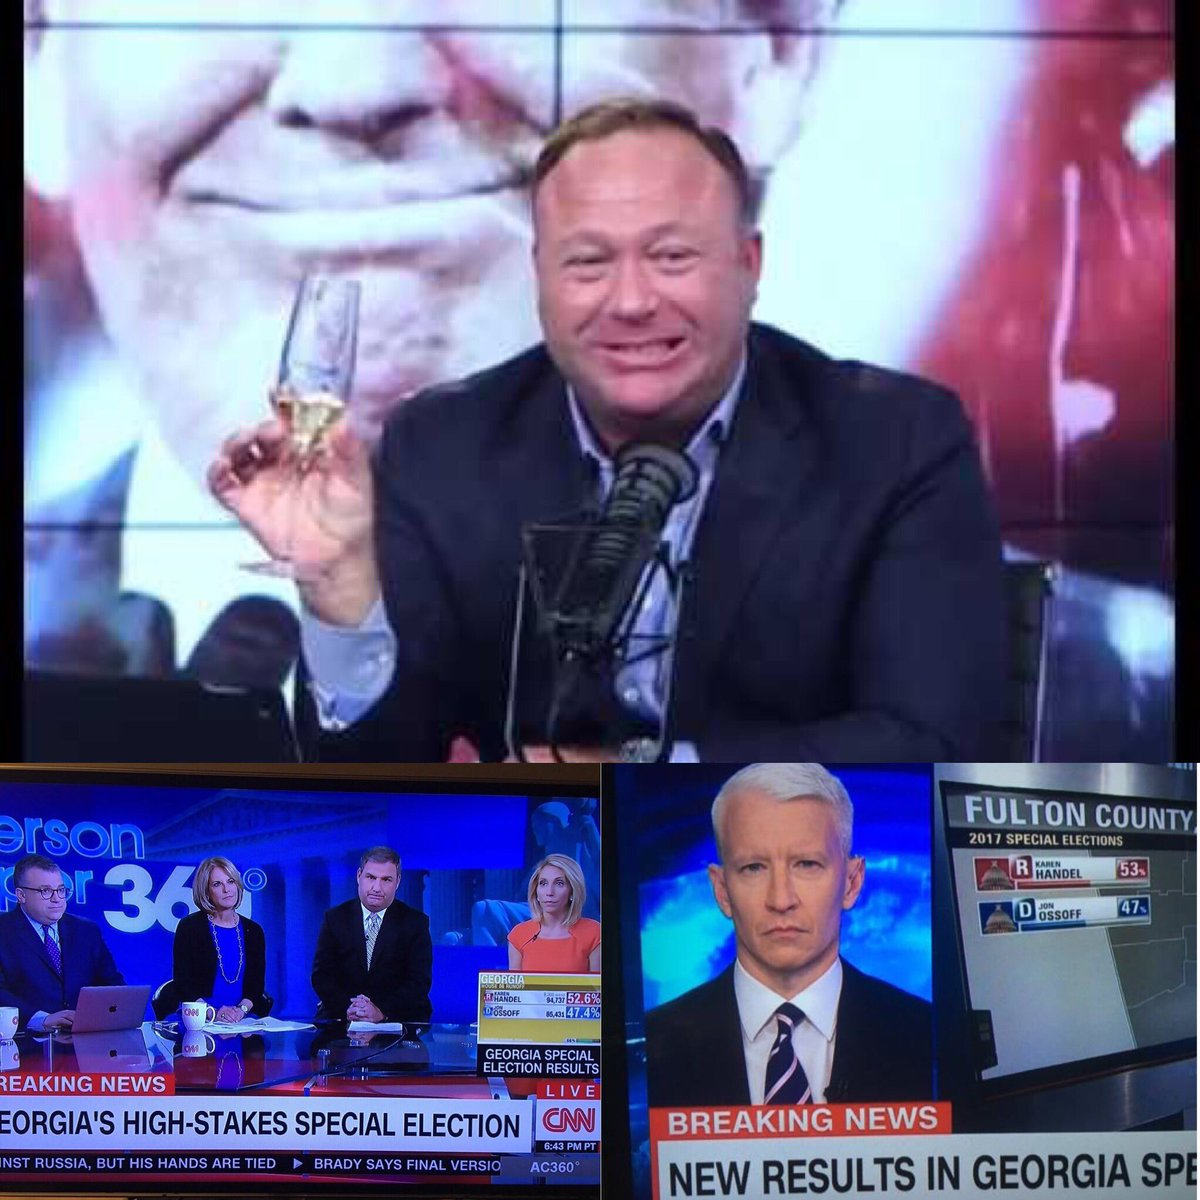 Never tired of #winning. #Covfefe #MAGA  @RealAlexJones @CNN #andersoncooper <br>http://pic.twitter.com/de27HoqHis